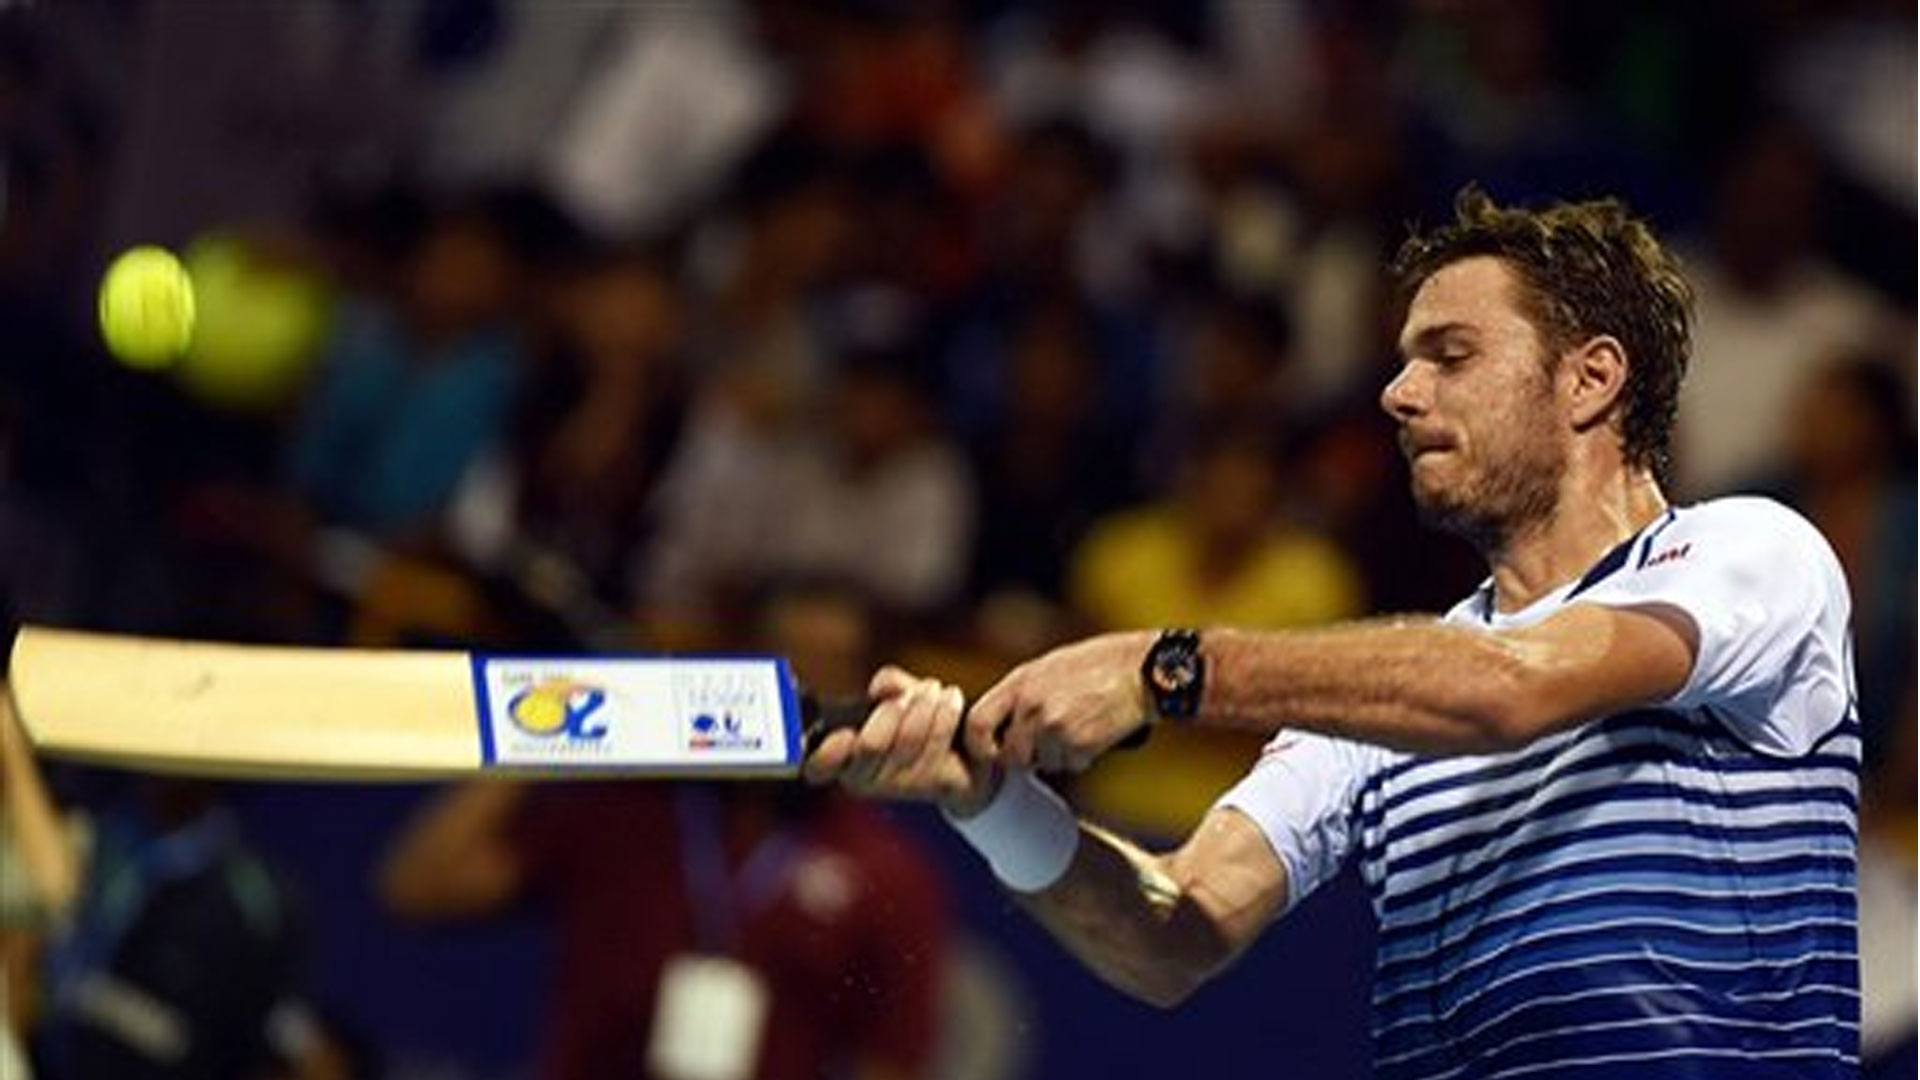 Defending champion Stanislas Wawrinka of Switzerland plays a cricket shot to celebrate defeating Gilles Muller of Luxembourg in the Chennai Open quarterfinals on Friday. Wawrinka won in straight sets 6-2, 7-6(4).(Photo: PTI)